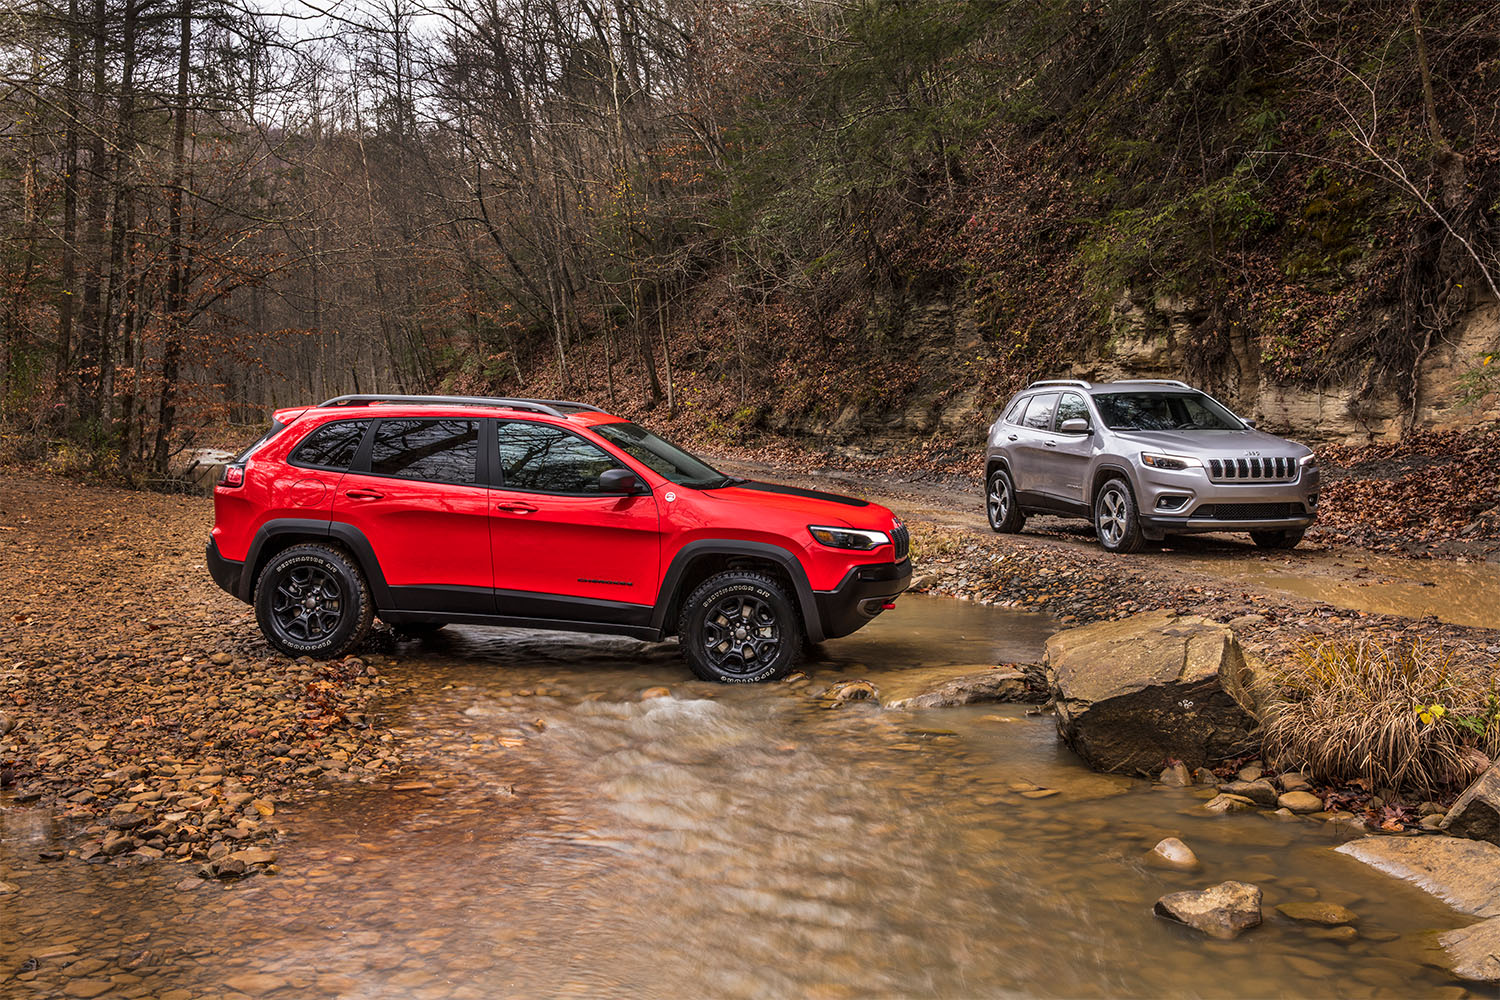 Jeep Cherokees available in Grand Rapids, MI at Courtesy Chrysler Jeep Dodge Ram